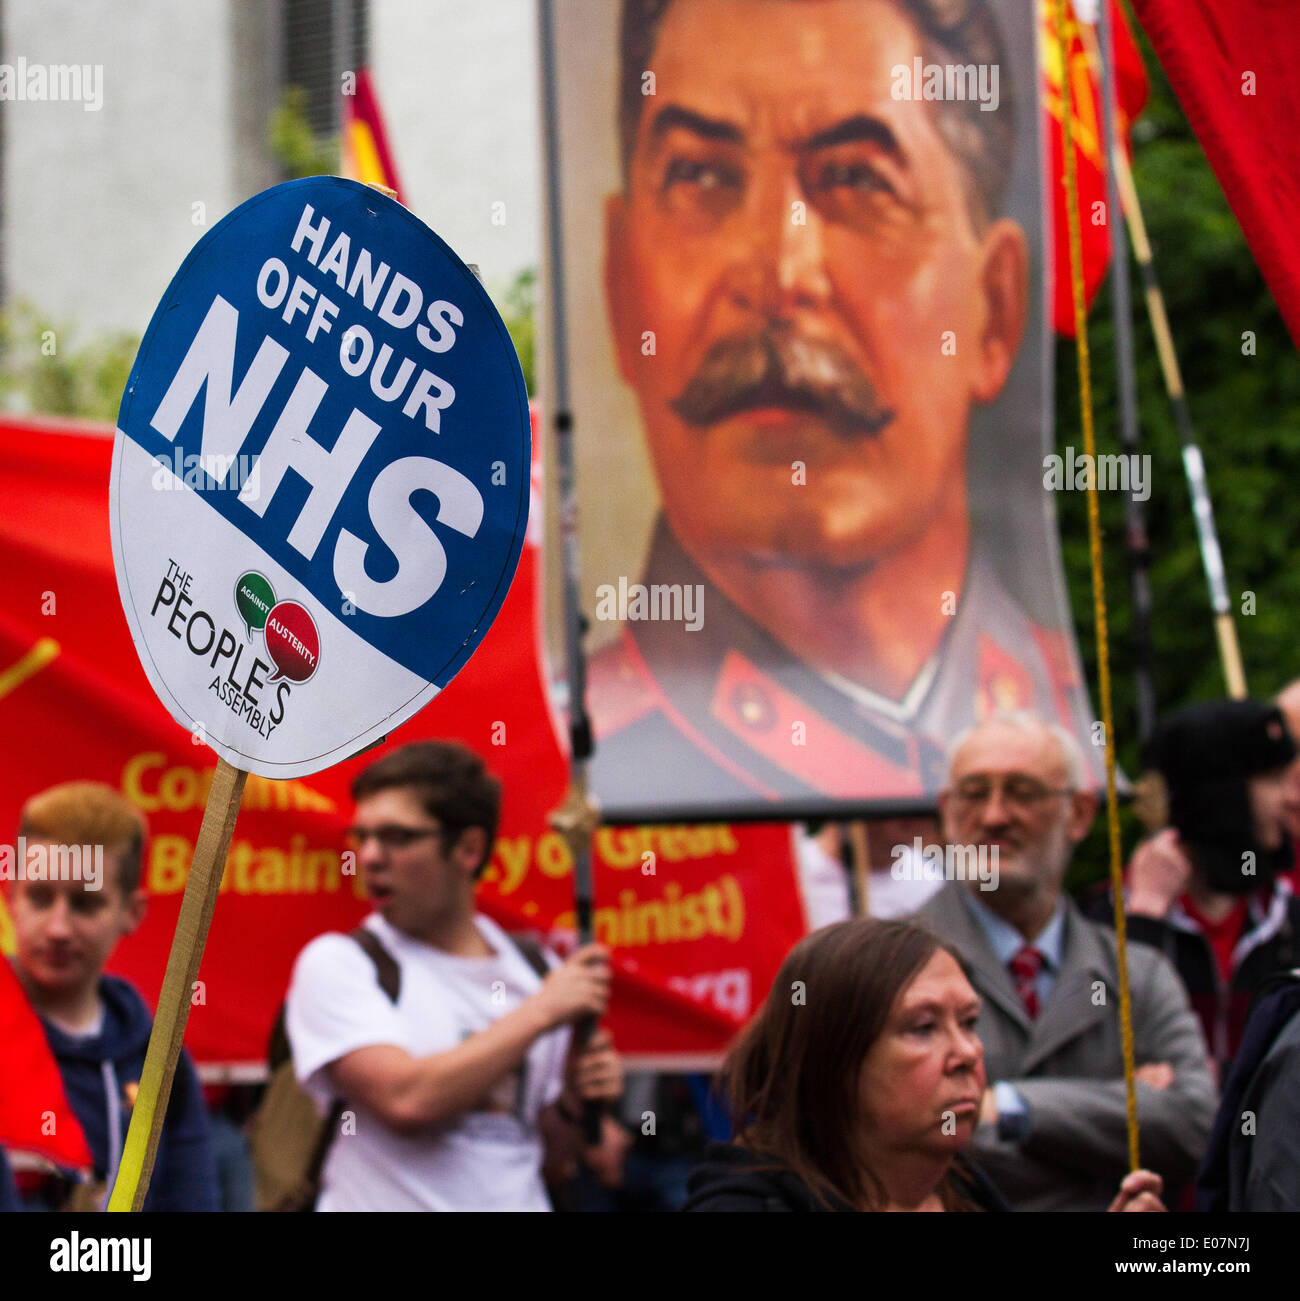 Salford, Manchester, UK  5th May, 2014. 'Hands of the NHS' and picture poster of Stalin, russia, communism, general at Salford's annual May Day Rally. Trades Union Councils organized this year's May Day event in Manchester, with the message `A Better Future for All Our Communities' to celebrate international workers day. - Stock Image